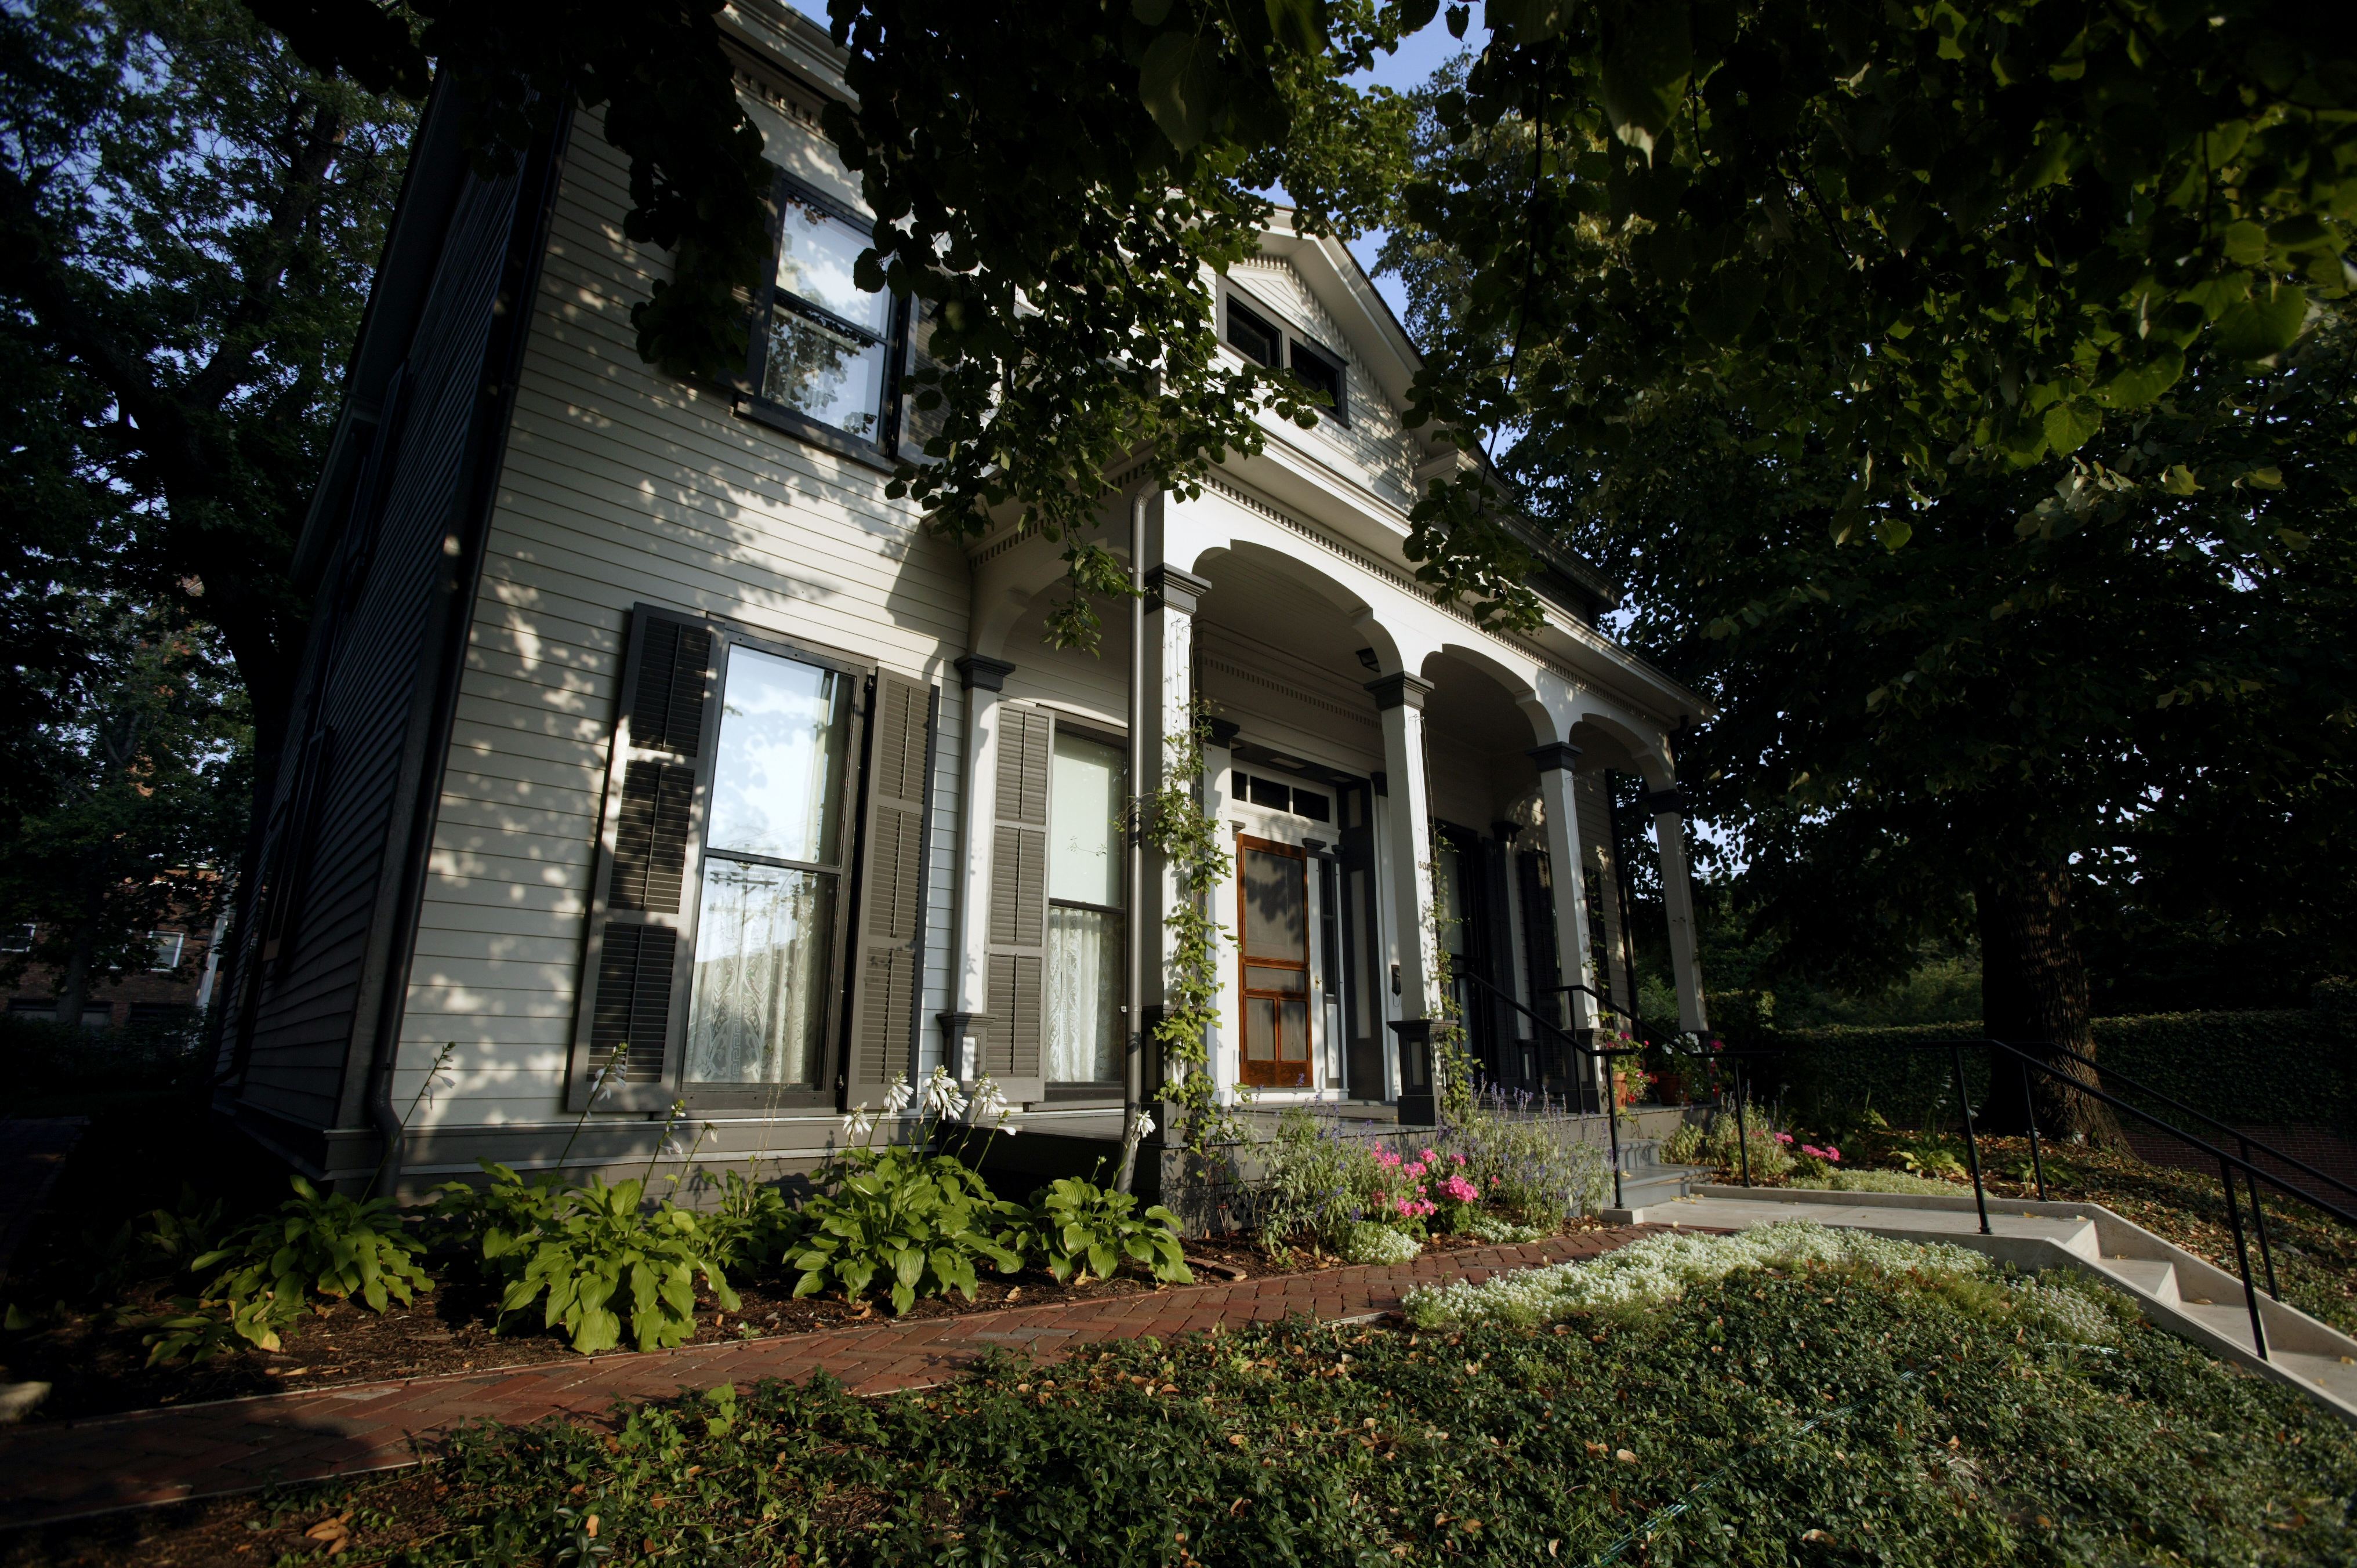 The Vachel Lindsay Home State Historic Site